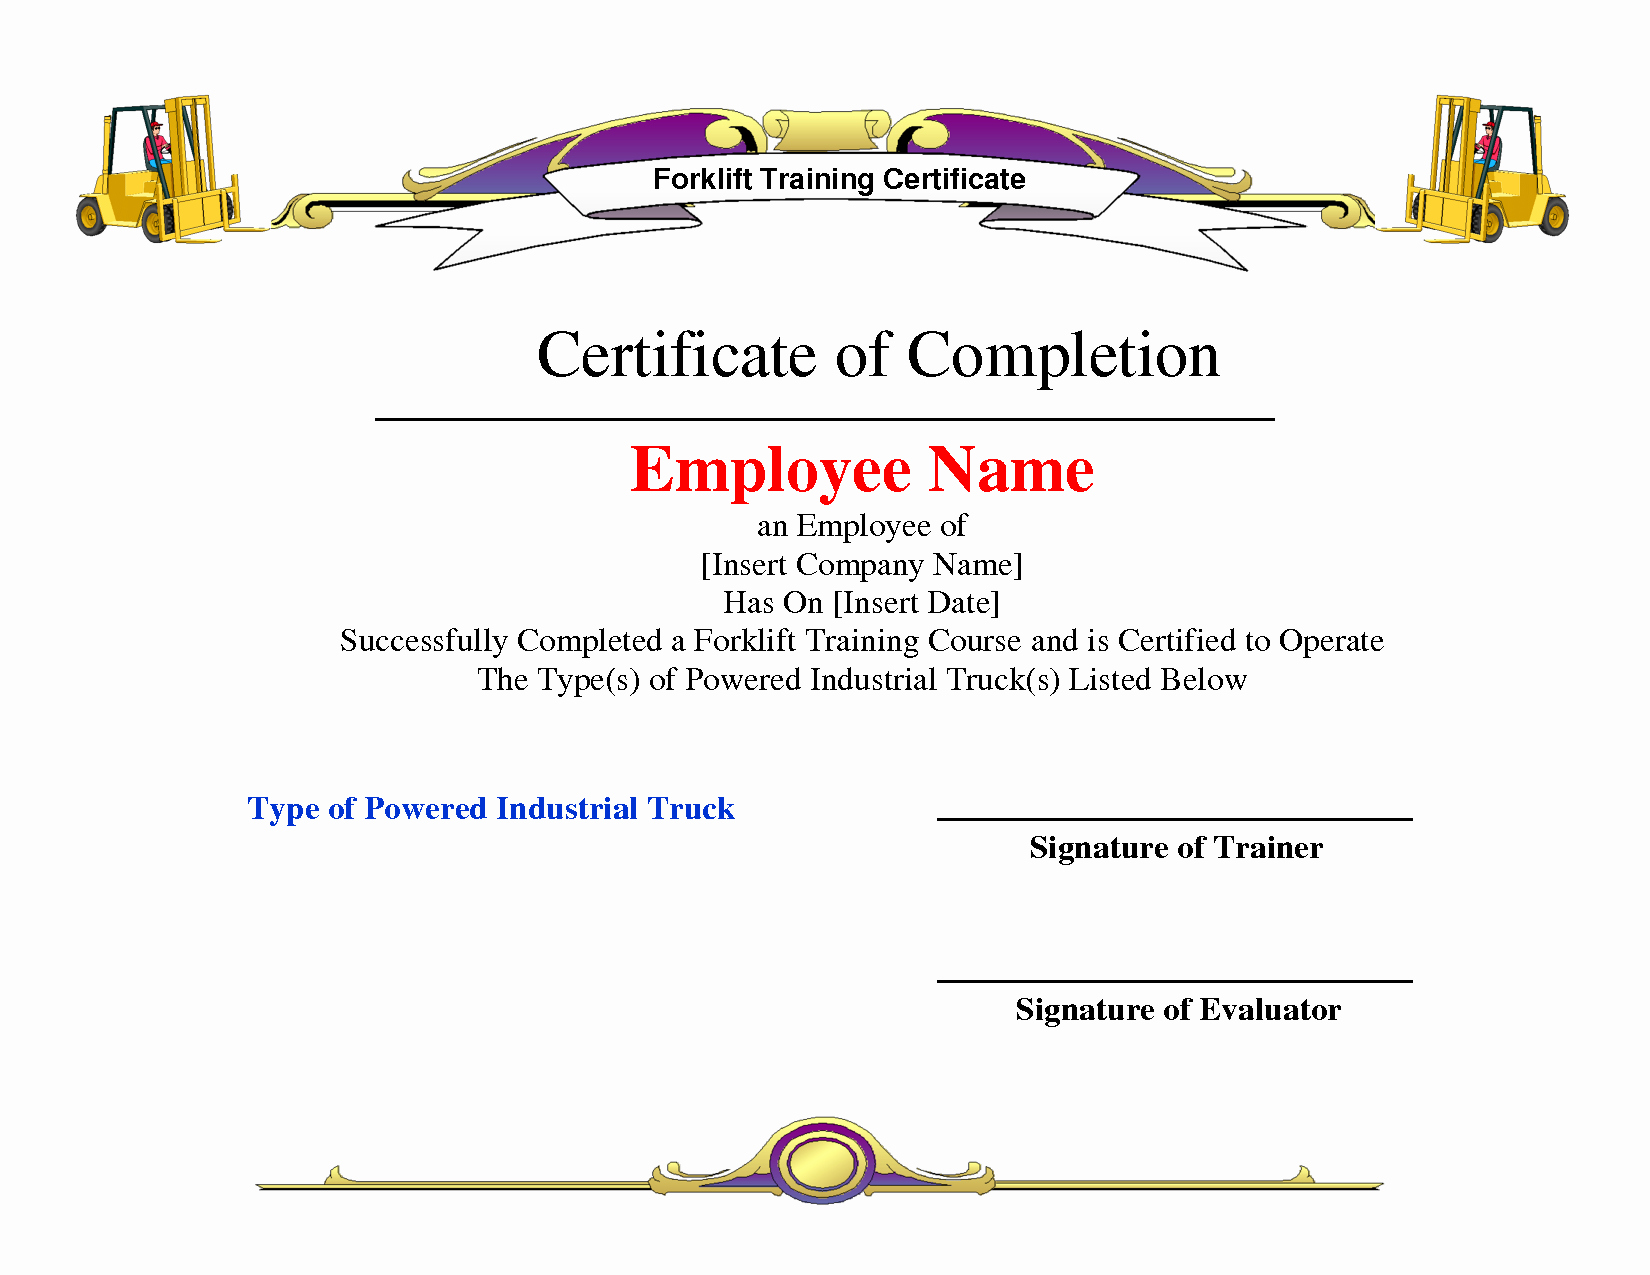 Forklift Training Certificate Template Elegant Certificate Template Category Page 13 Efoza